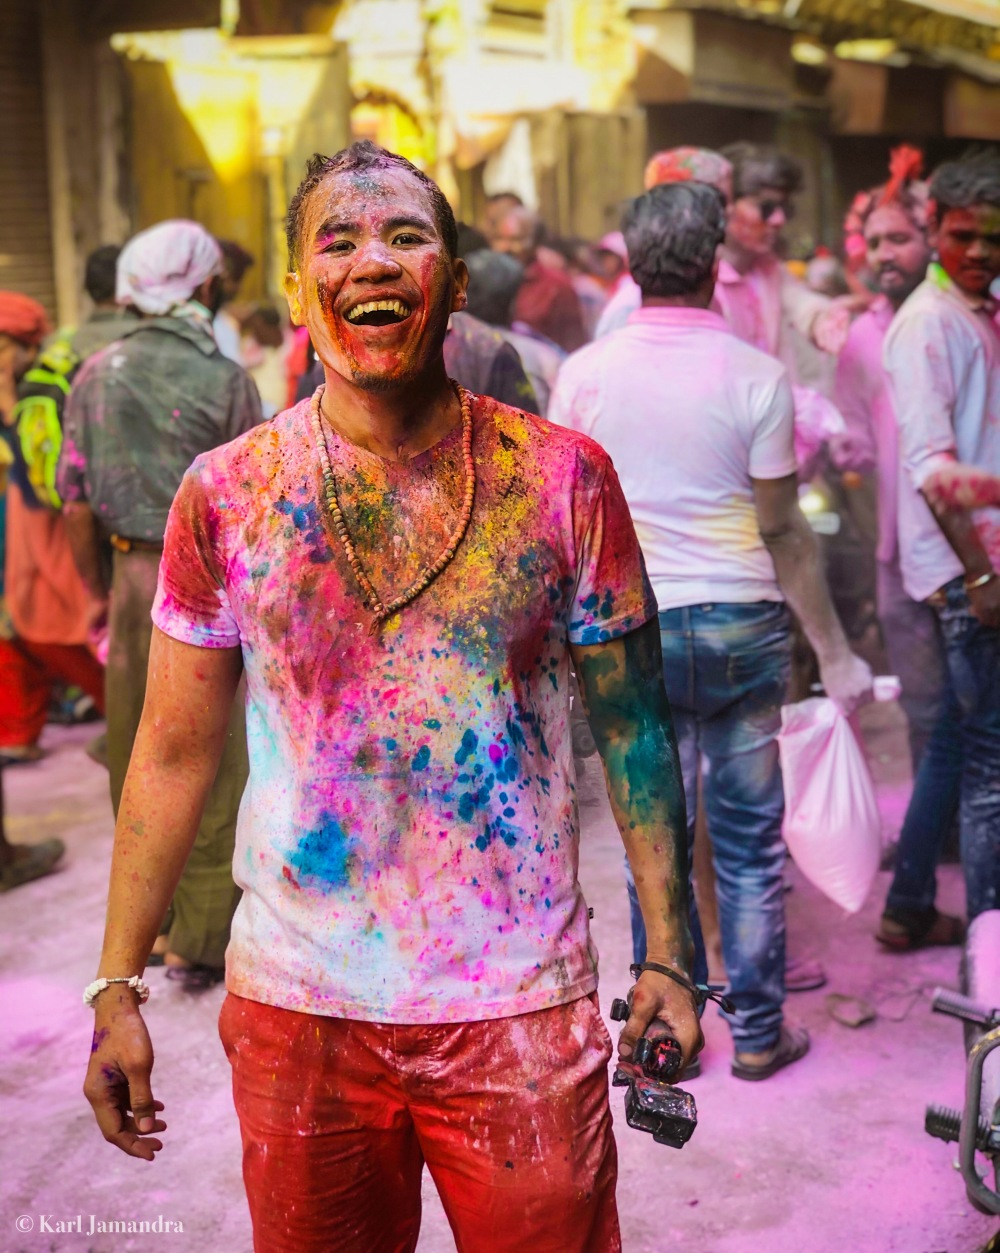 DRENCHED IN COLORS.